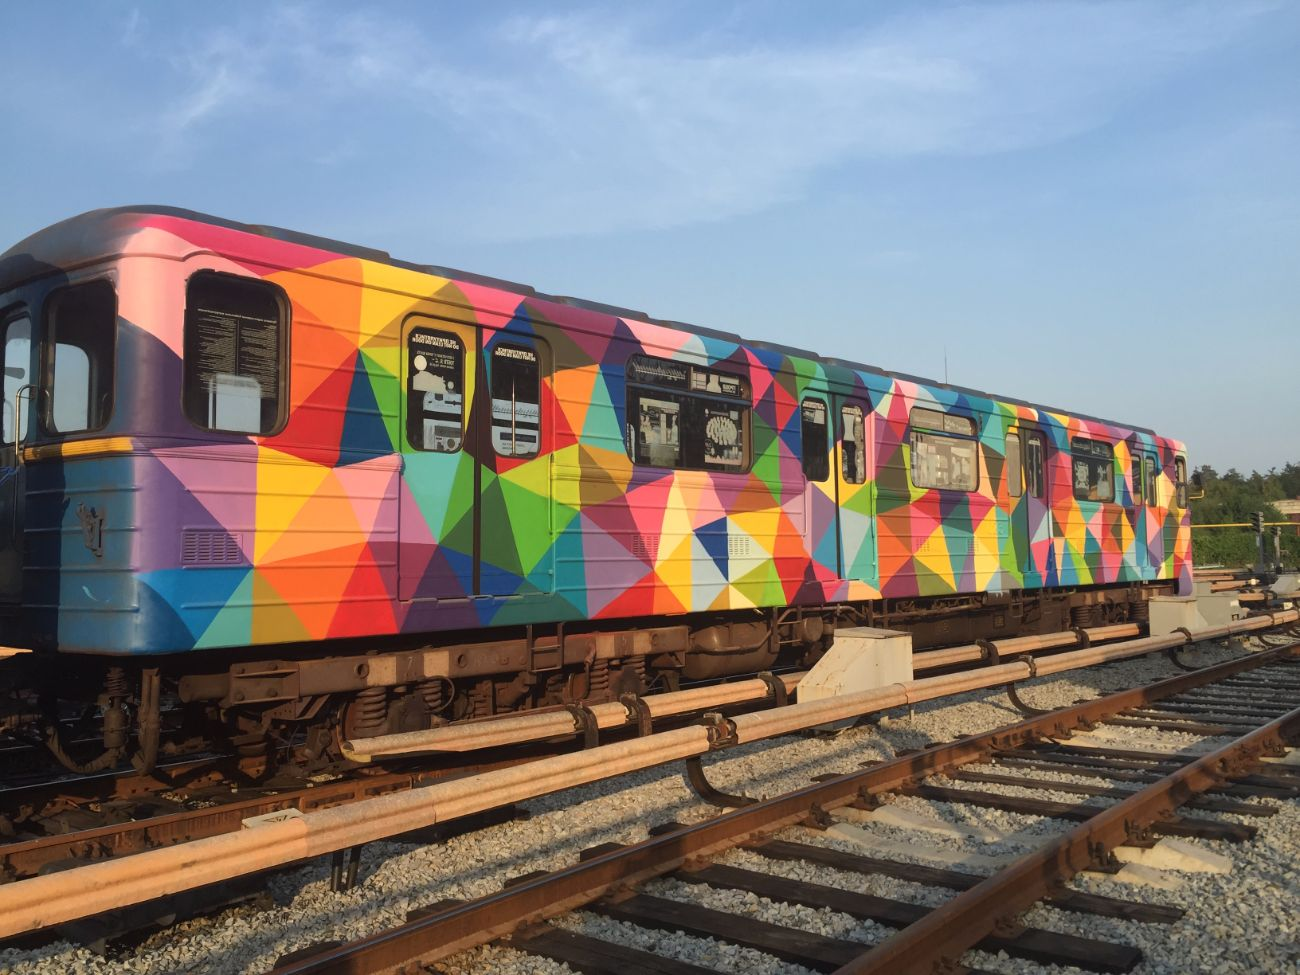 okuda-san-miguels-5-car-train-in-kiev-ukraine-thevandallist-2